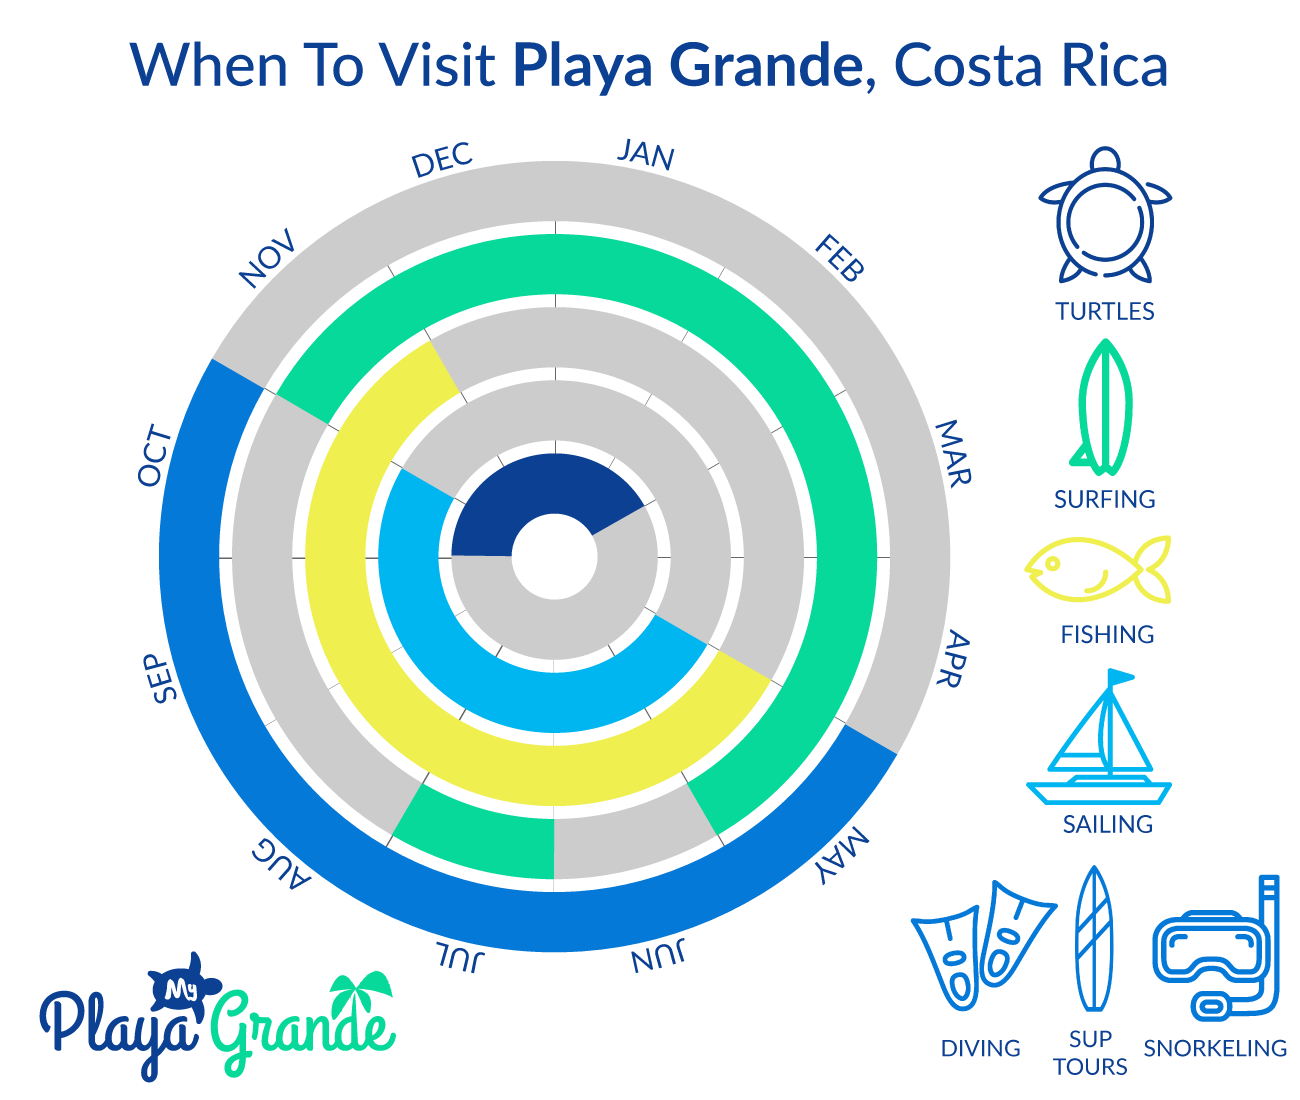 Infographic of When To Visit Playa Grande